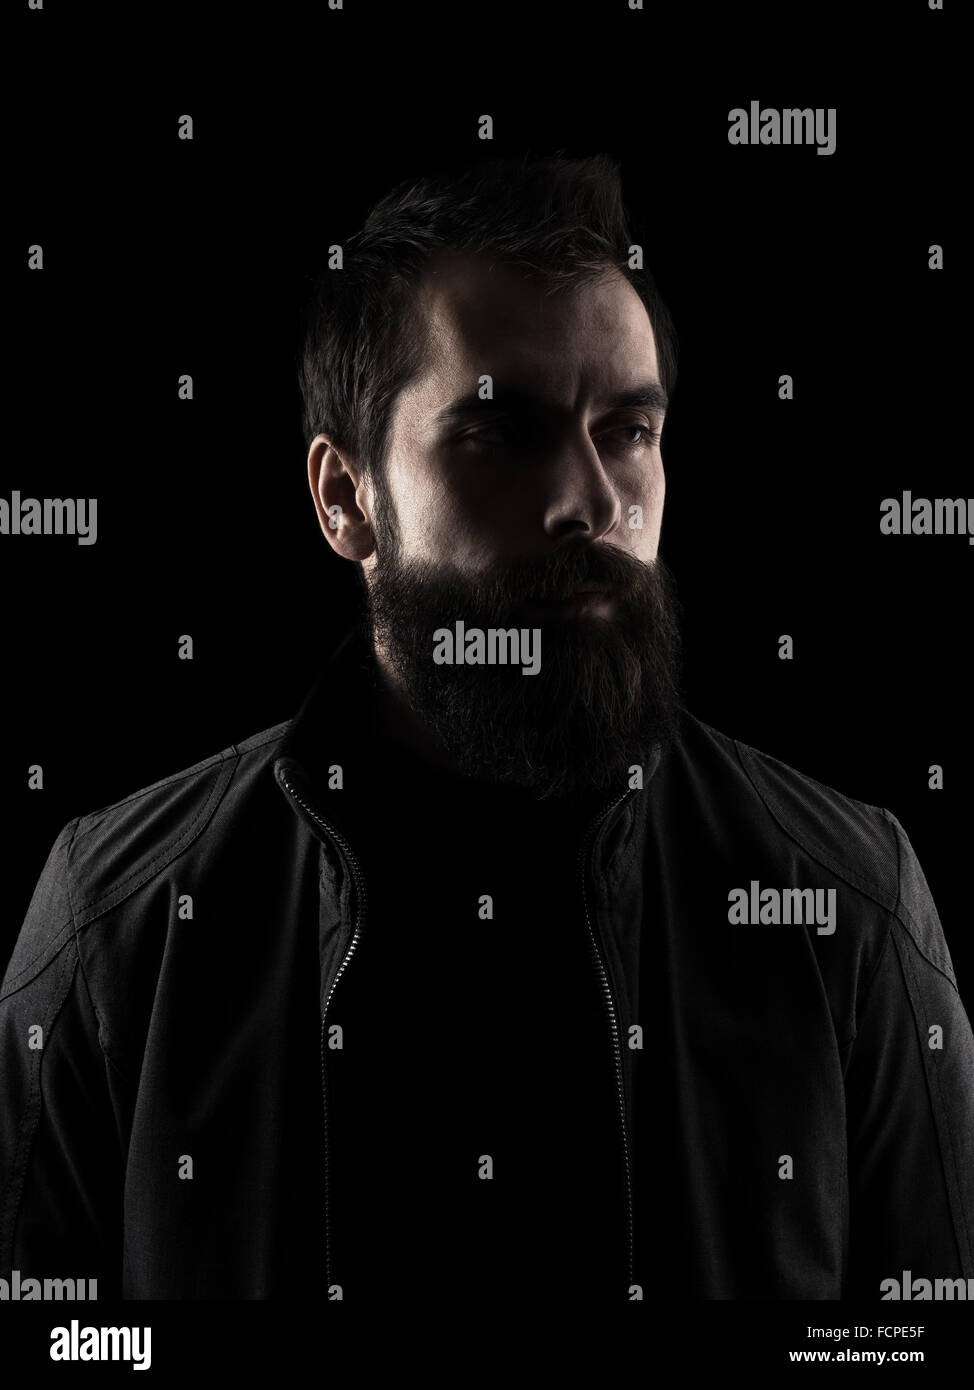 Desaturated serious bearded hipster looking away. High contrast low key dark shadow portrait isolated over black - Stock Image